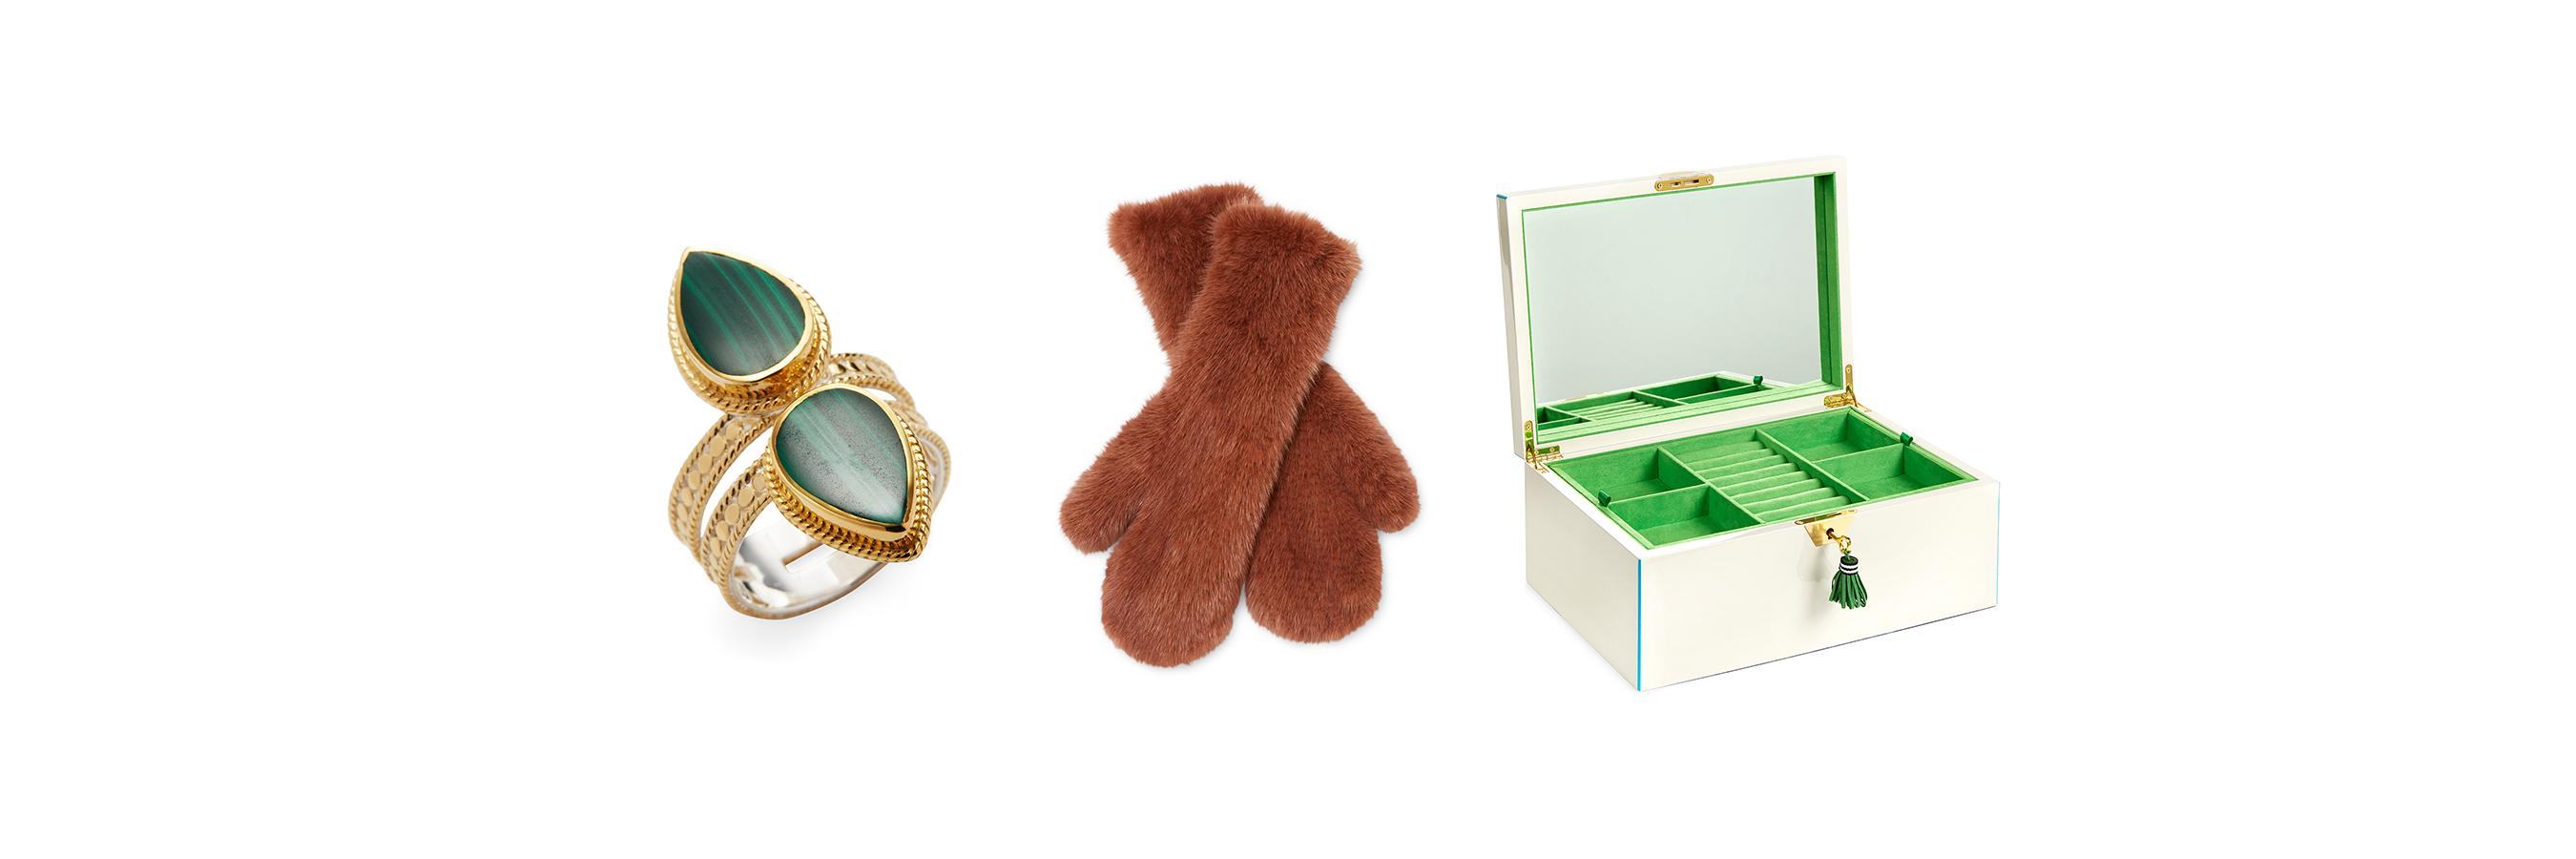 25 Stylish Holiday Gift Ideas For Mom